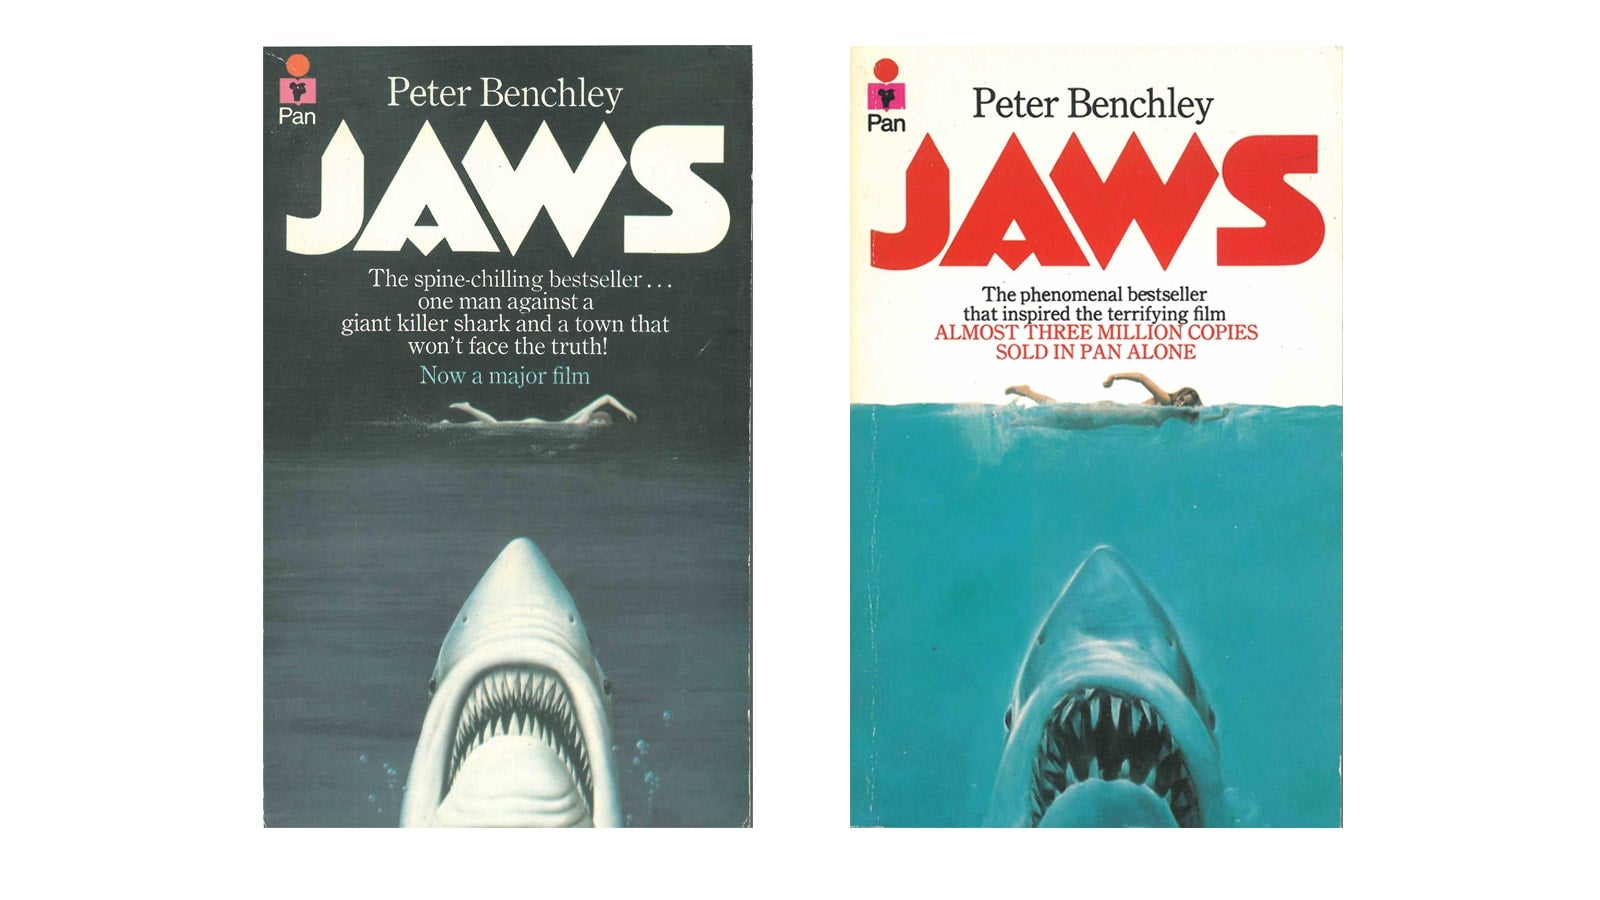 Jaws Film tie in covers